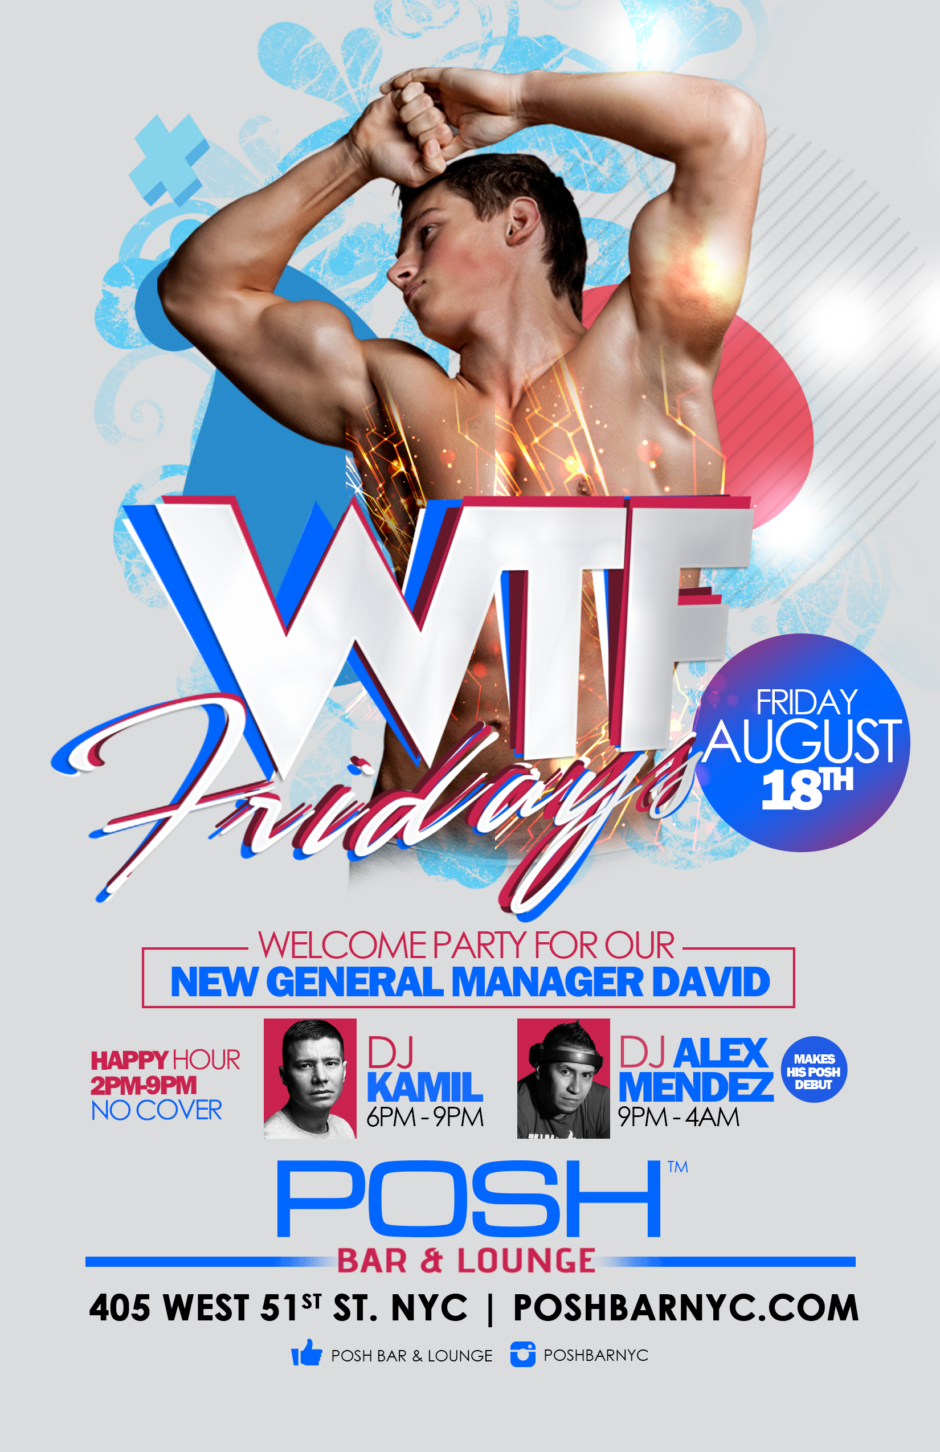 http://poshbarnyc.com/wp-content/uploads/2017/08/POSH-AUG18-_-WELCOME-PARTY-MANAGER.png